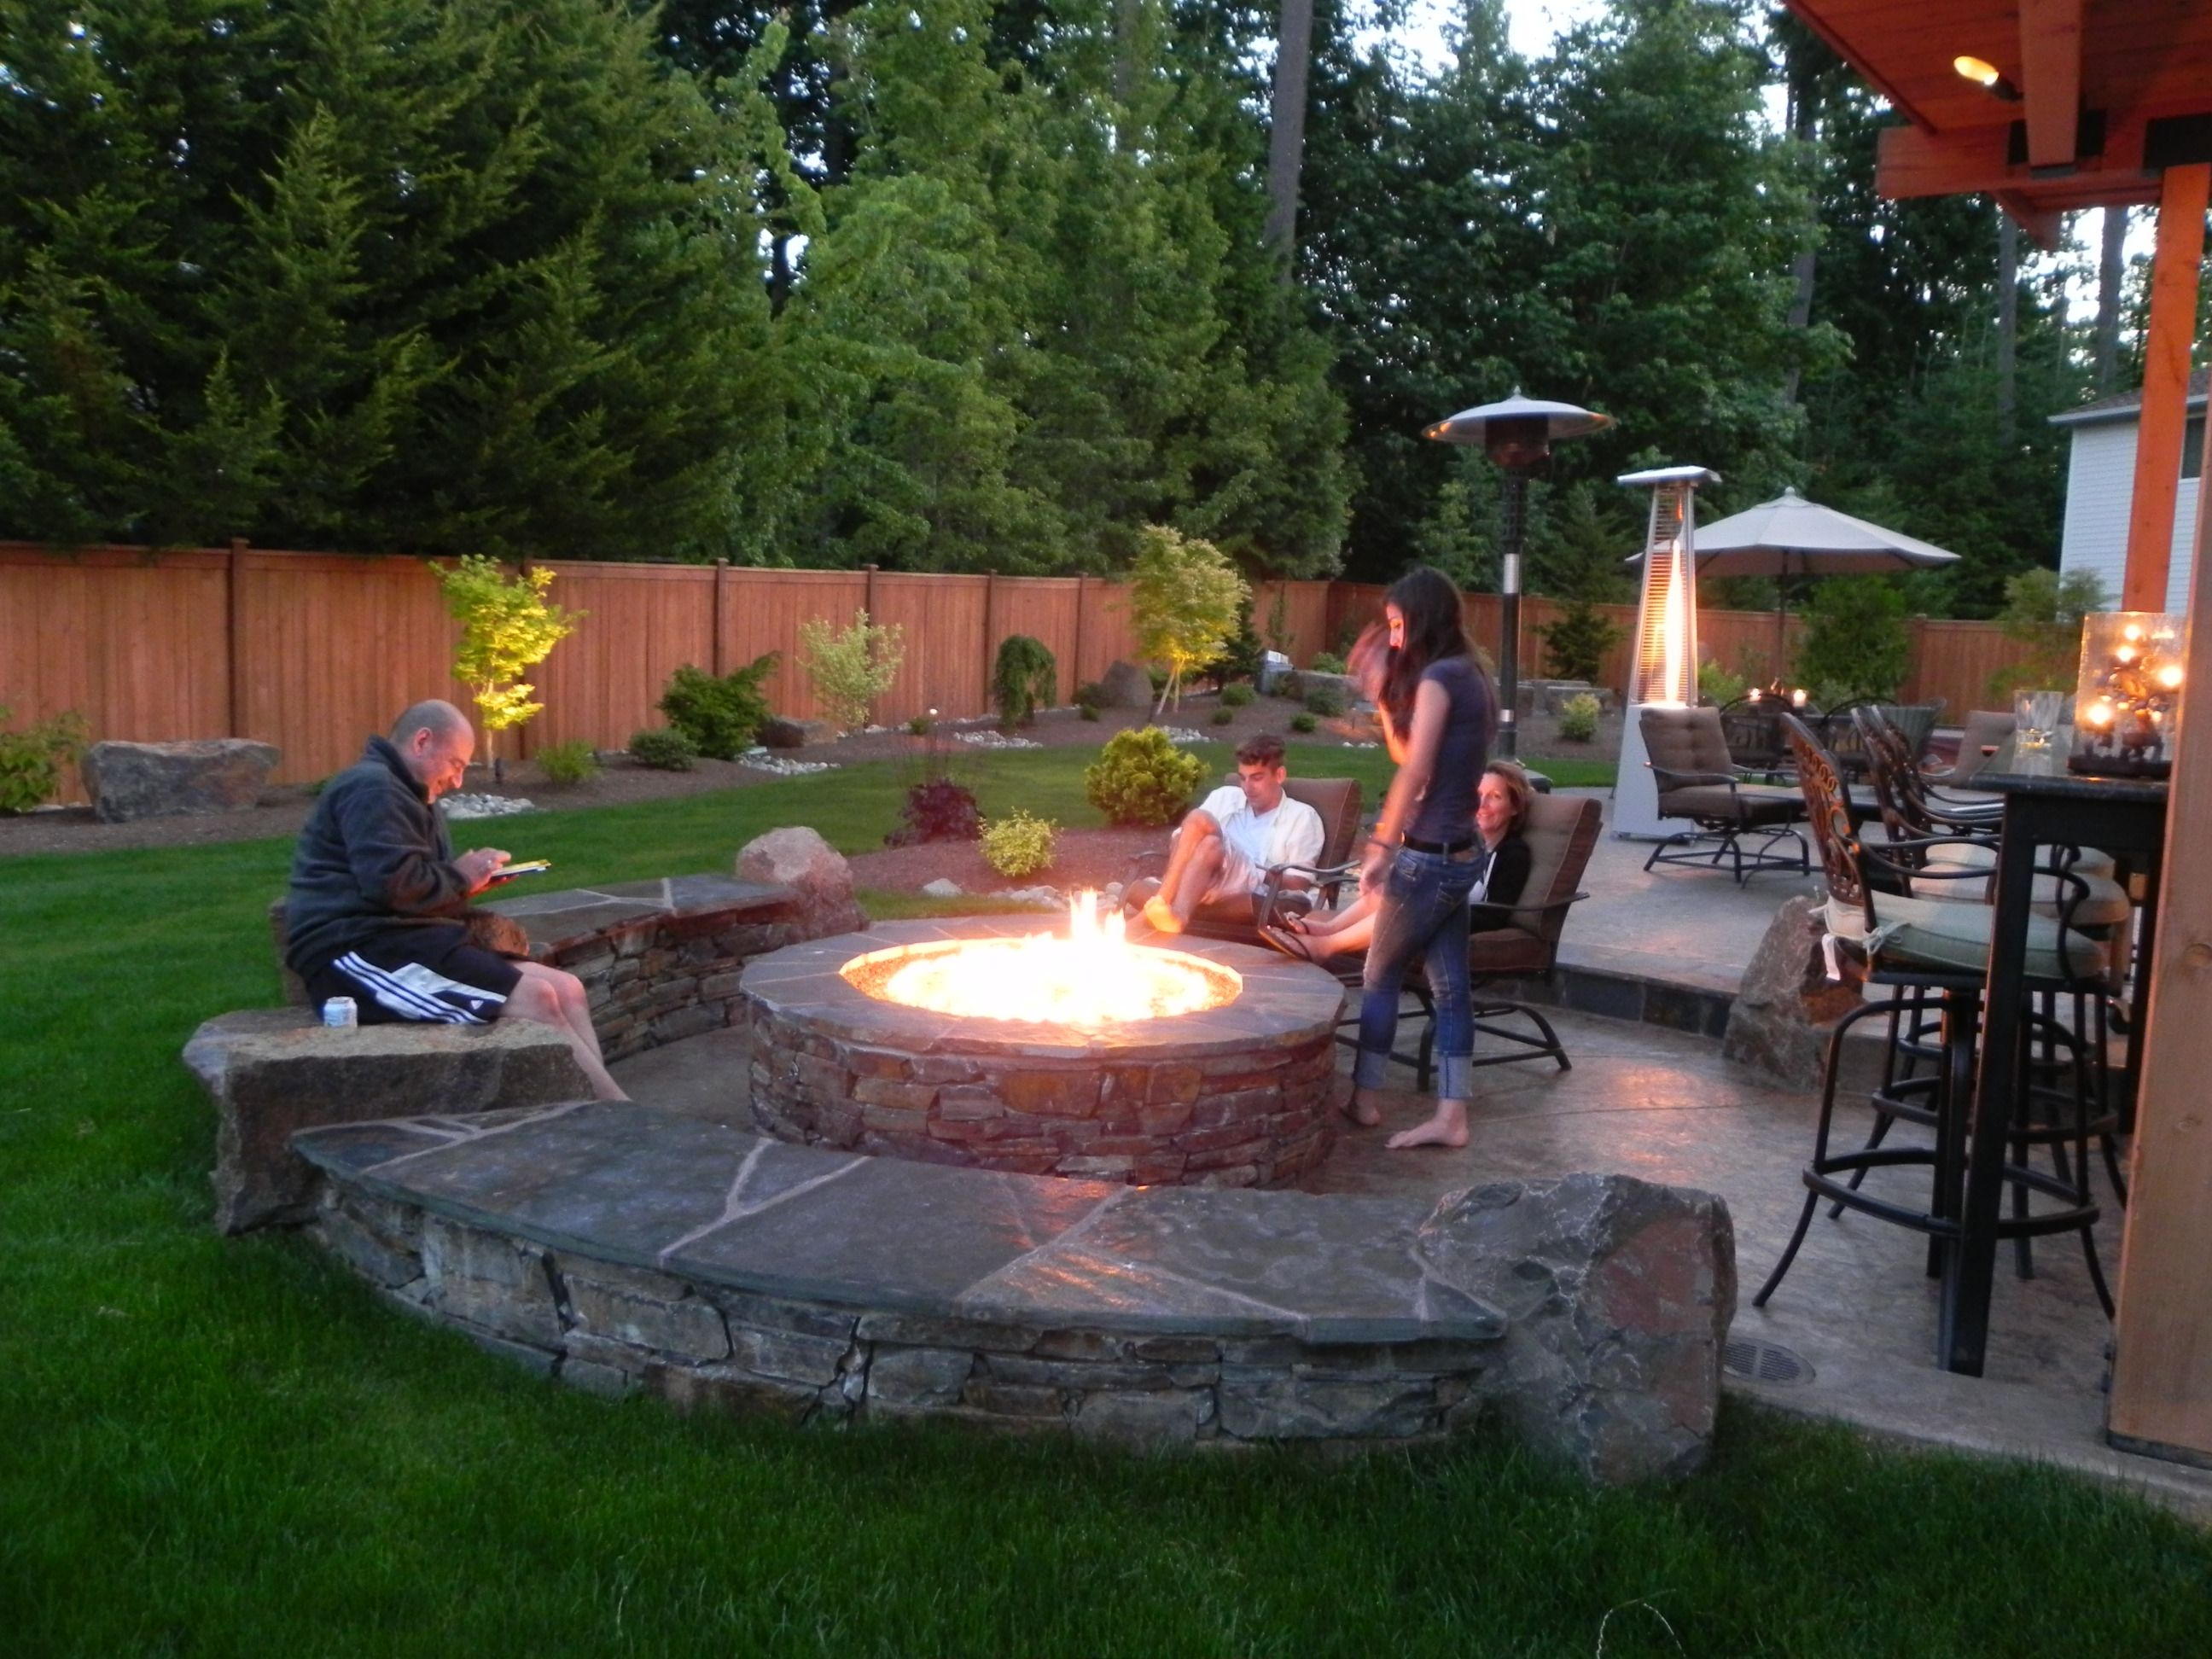 Fire Pit Design Ideas how to design a garden fire pit garden post Ideas For Backyard Landscaping Modern Looking Garden Fixtures Look Great Among Beauties Of Nature Backyard Landscaping